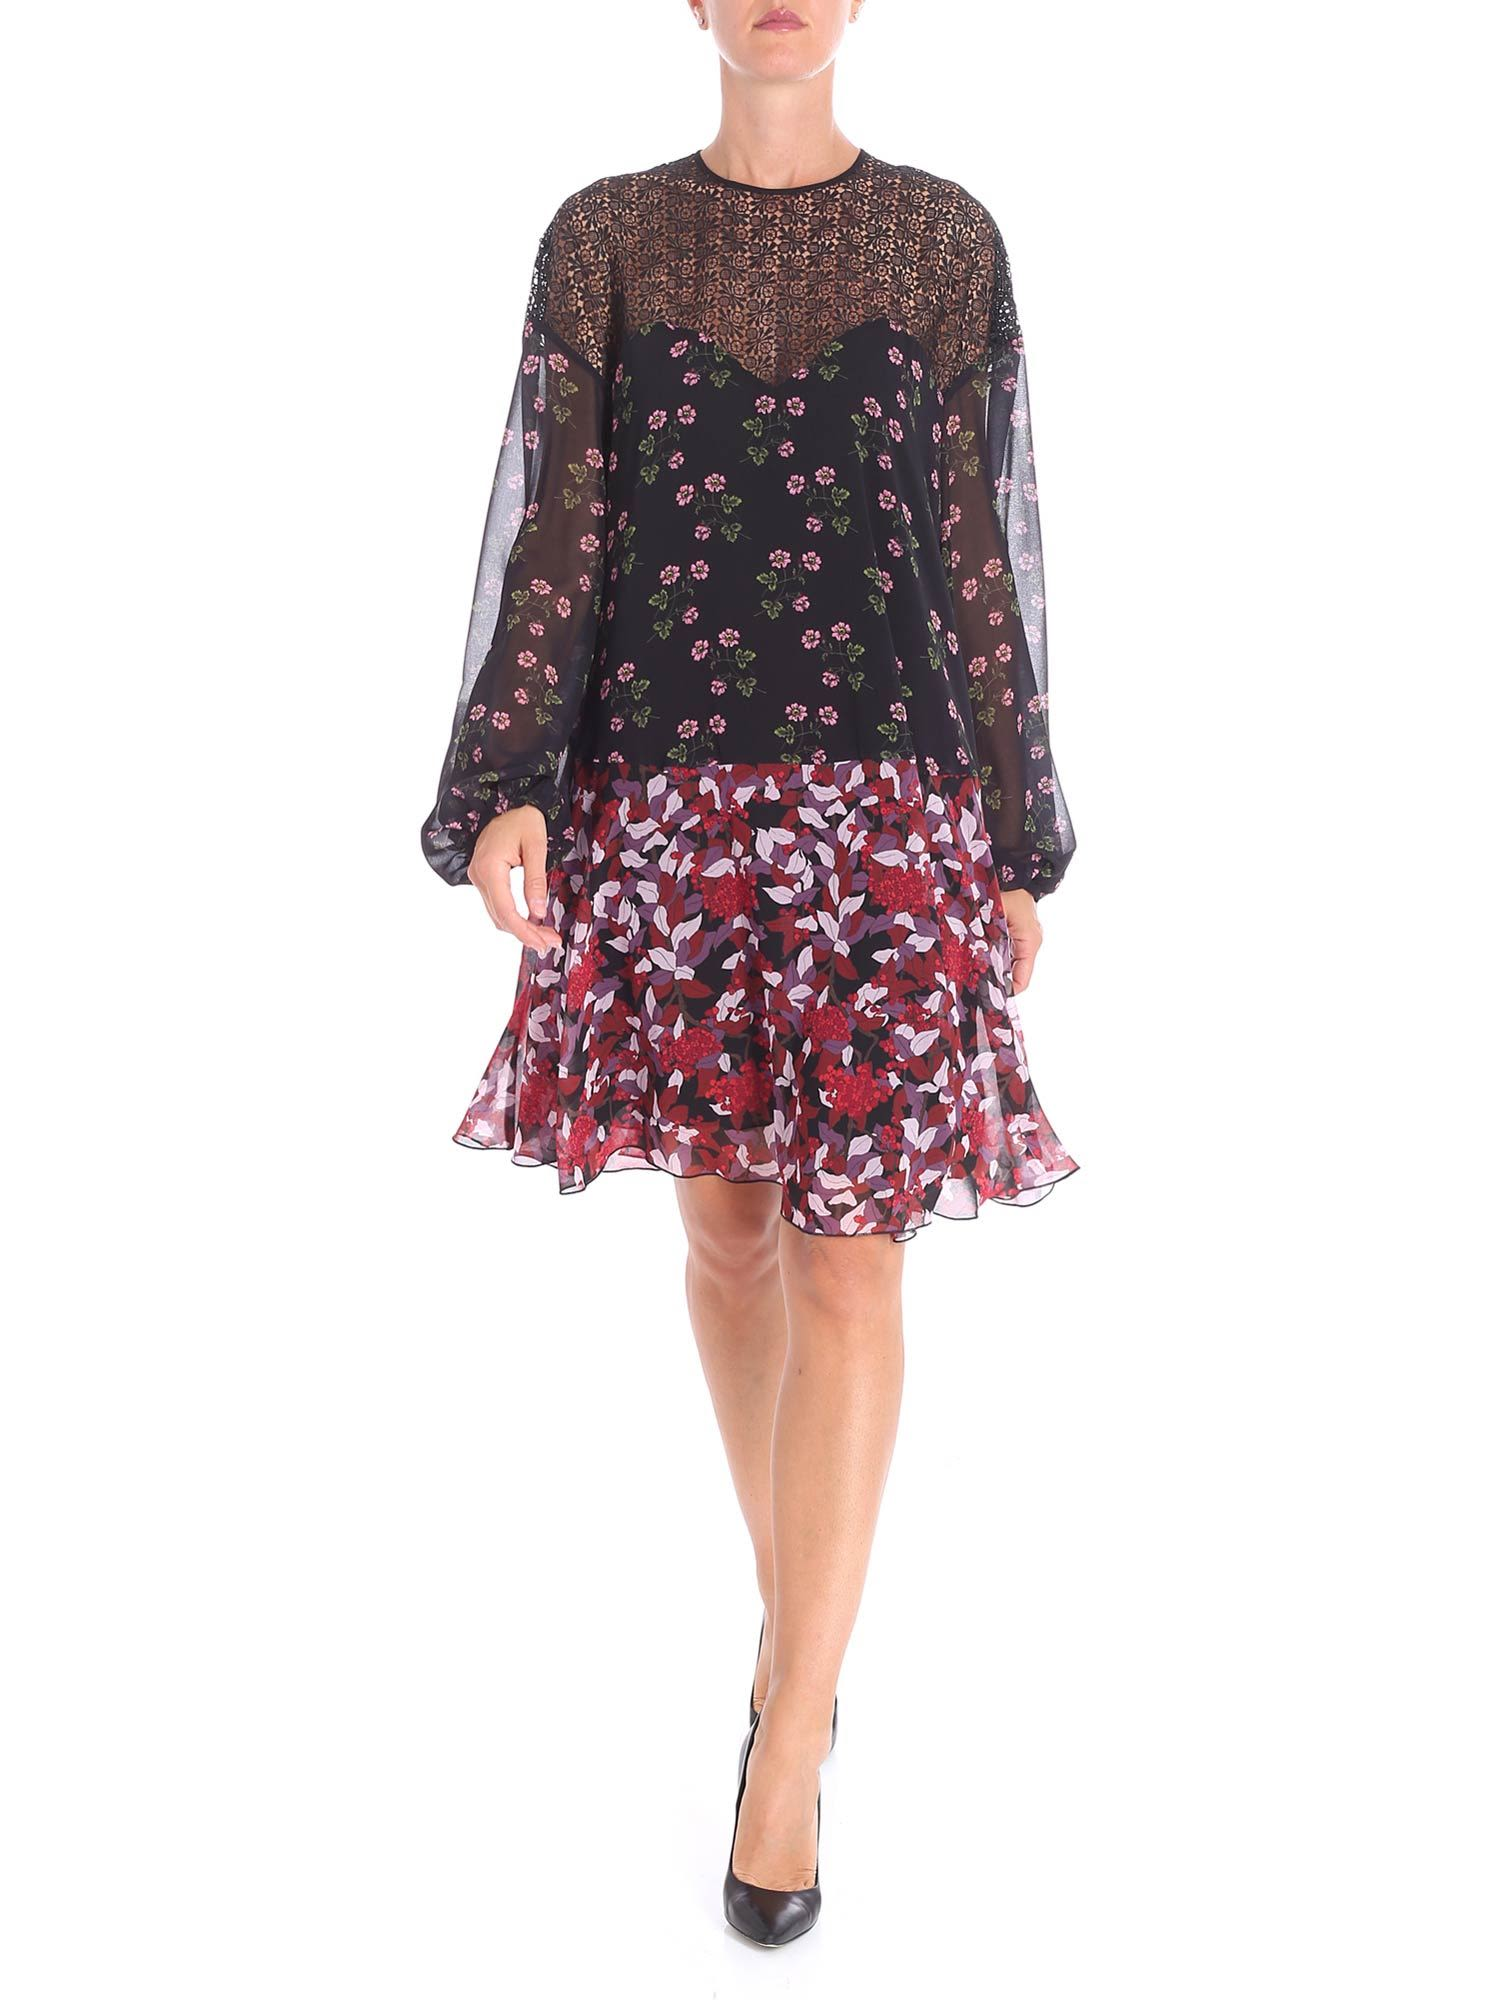 GIAMBA Floral Print Dress in Black